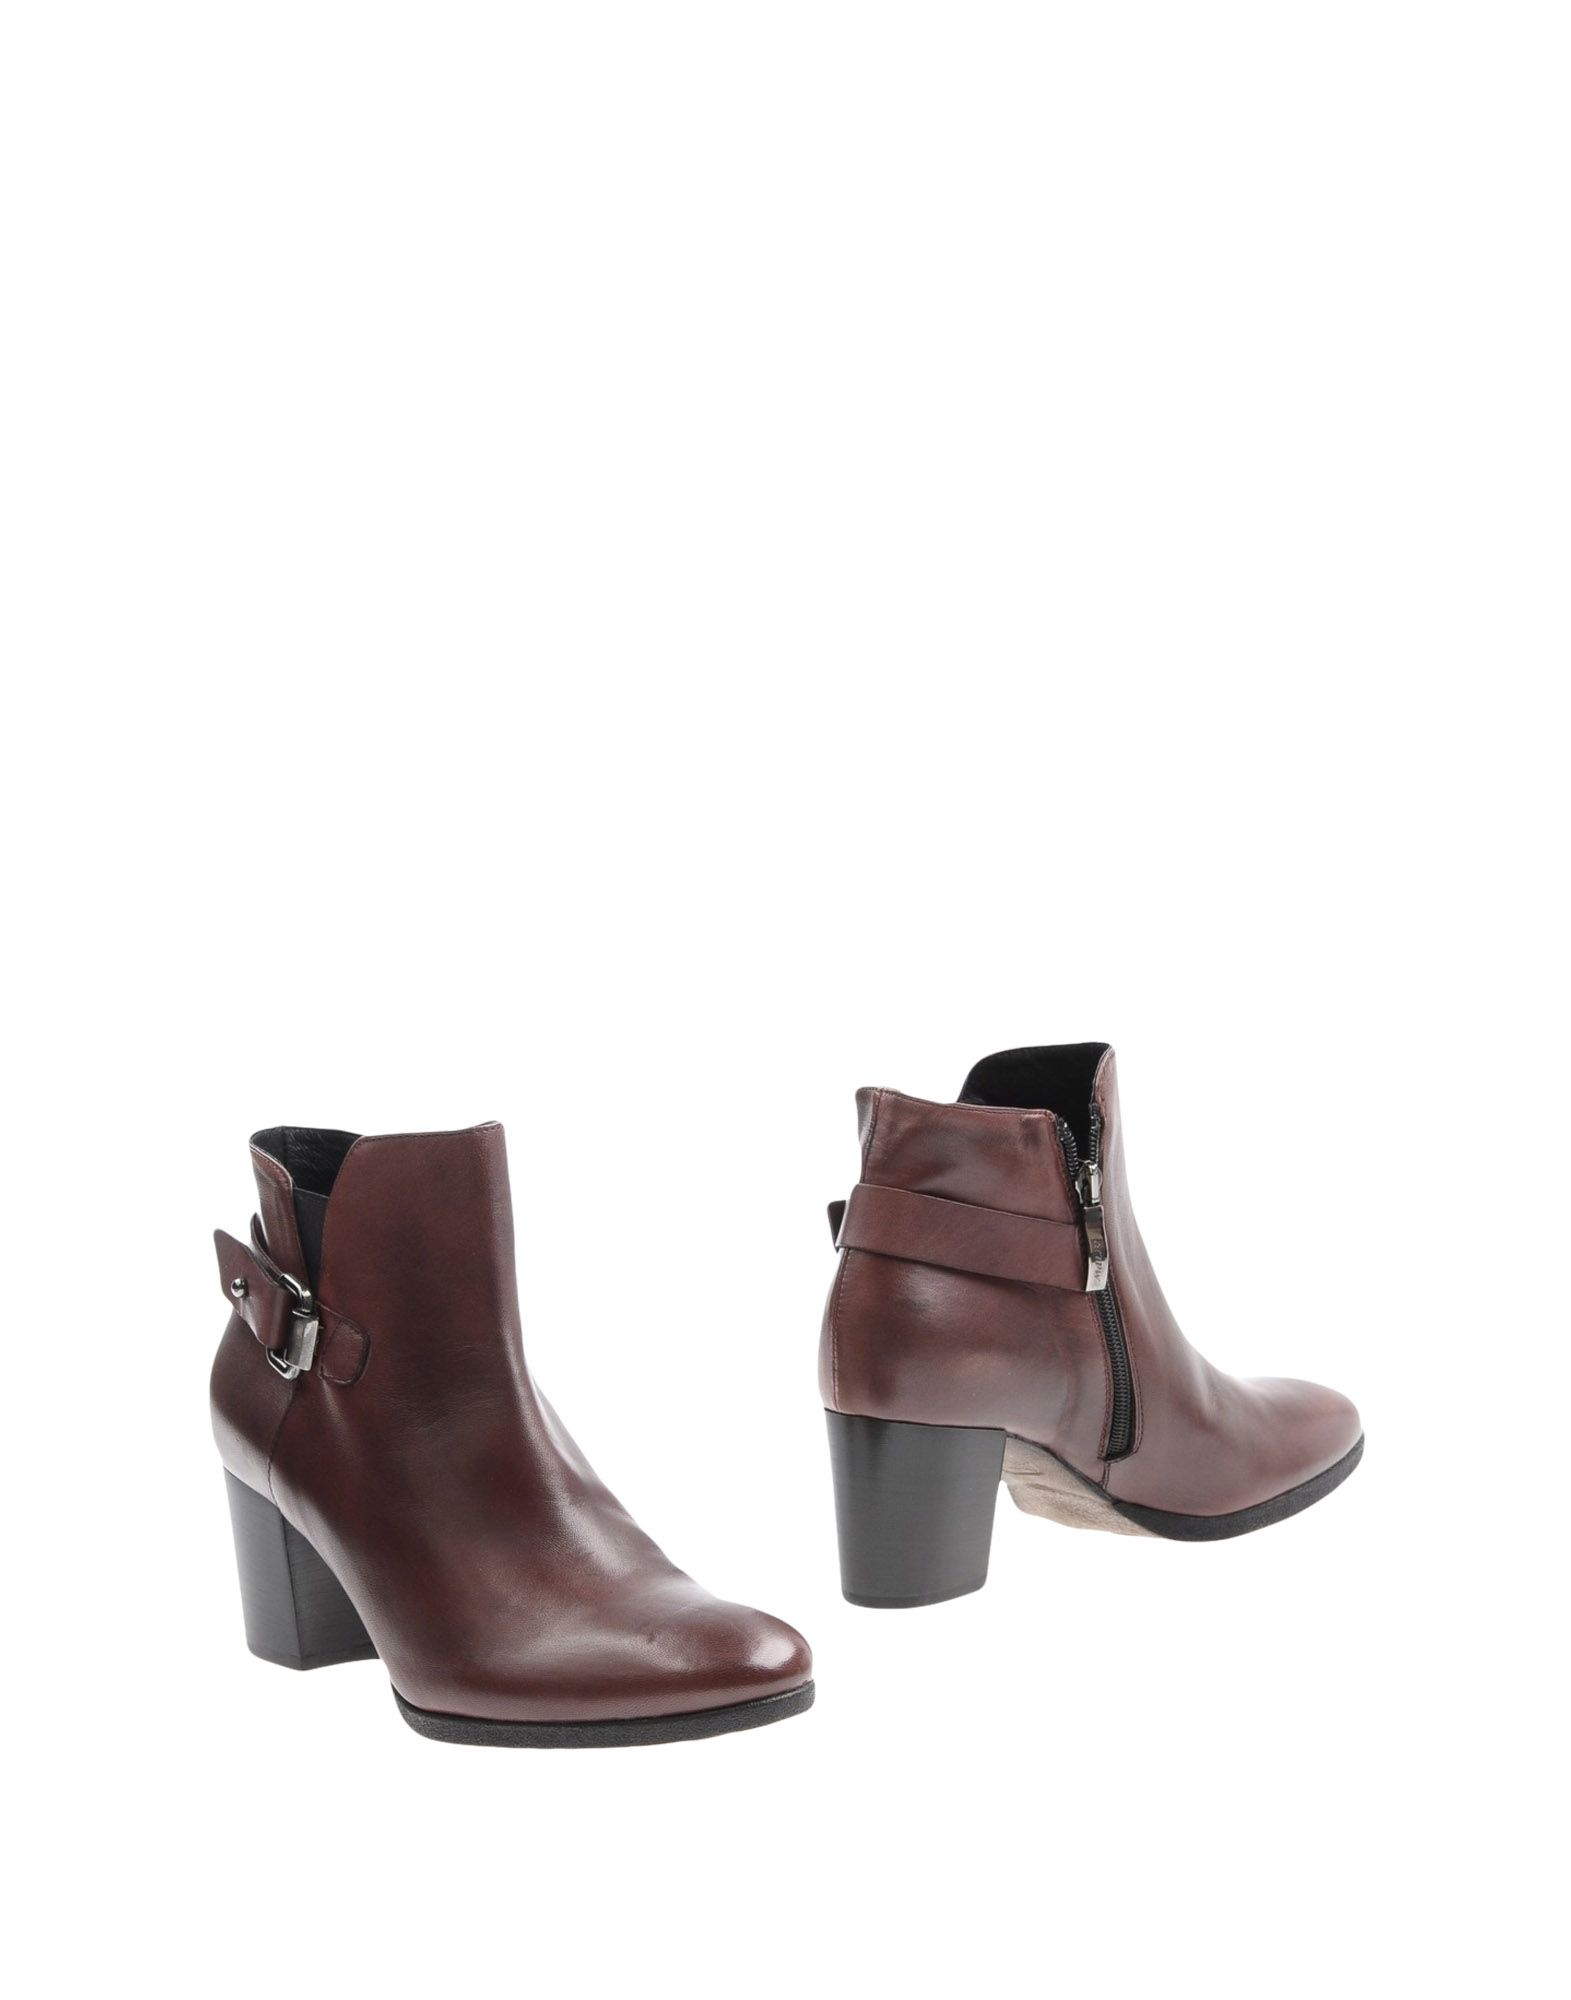 Mally Ankle Boot - Women Mally Ankle Boots Kingdom online on  United Kingdom Boots - 11305493AM 2ad103